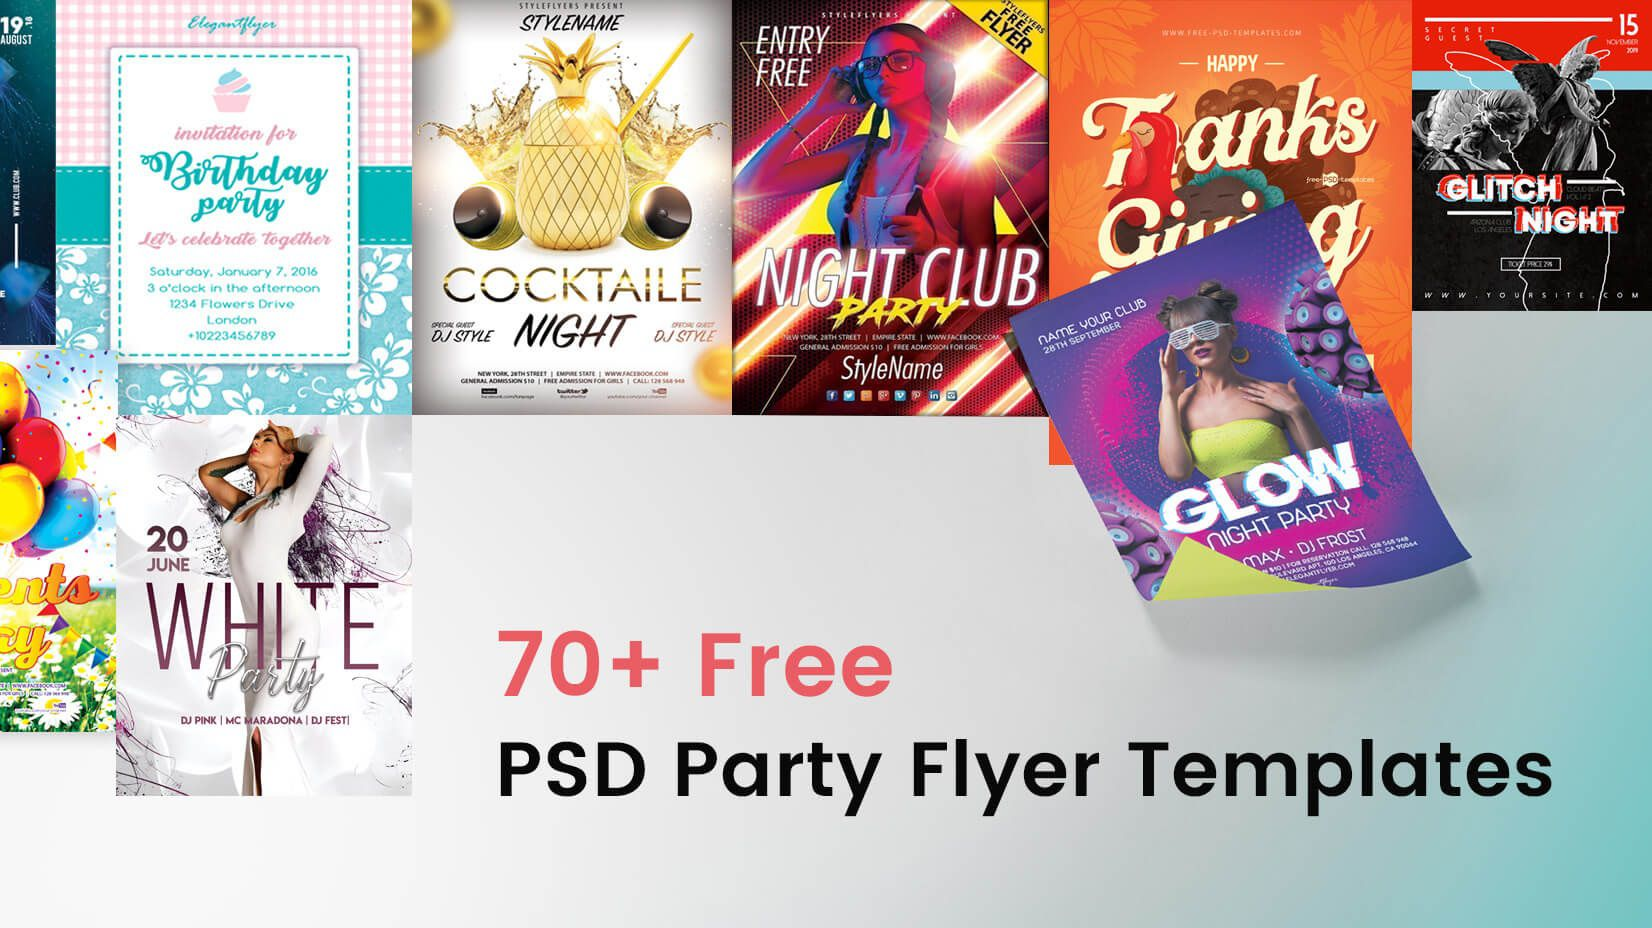 006 Striking Free Psd Party Flyer Template Download Highest Clarity  - Neon Glow RaveFull